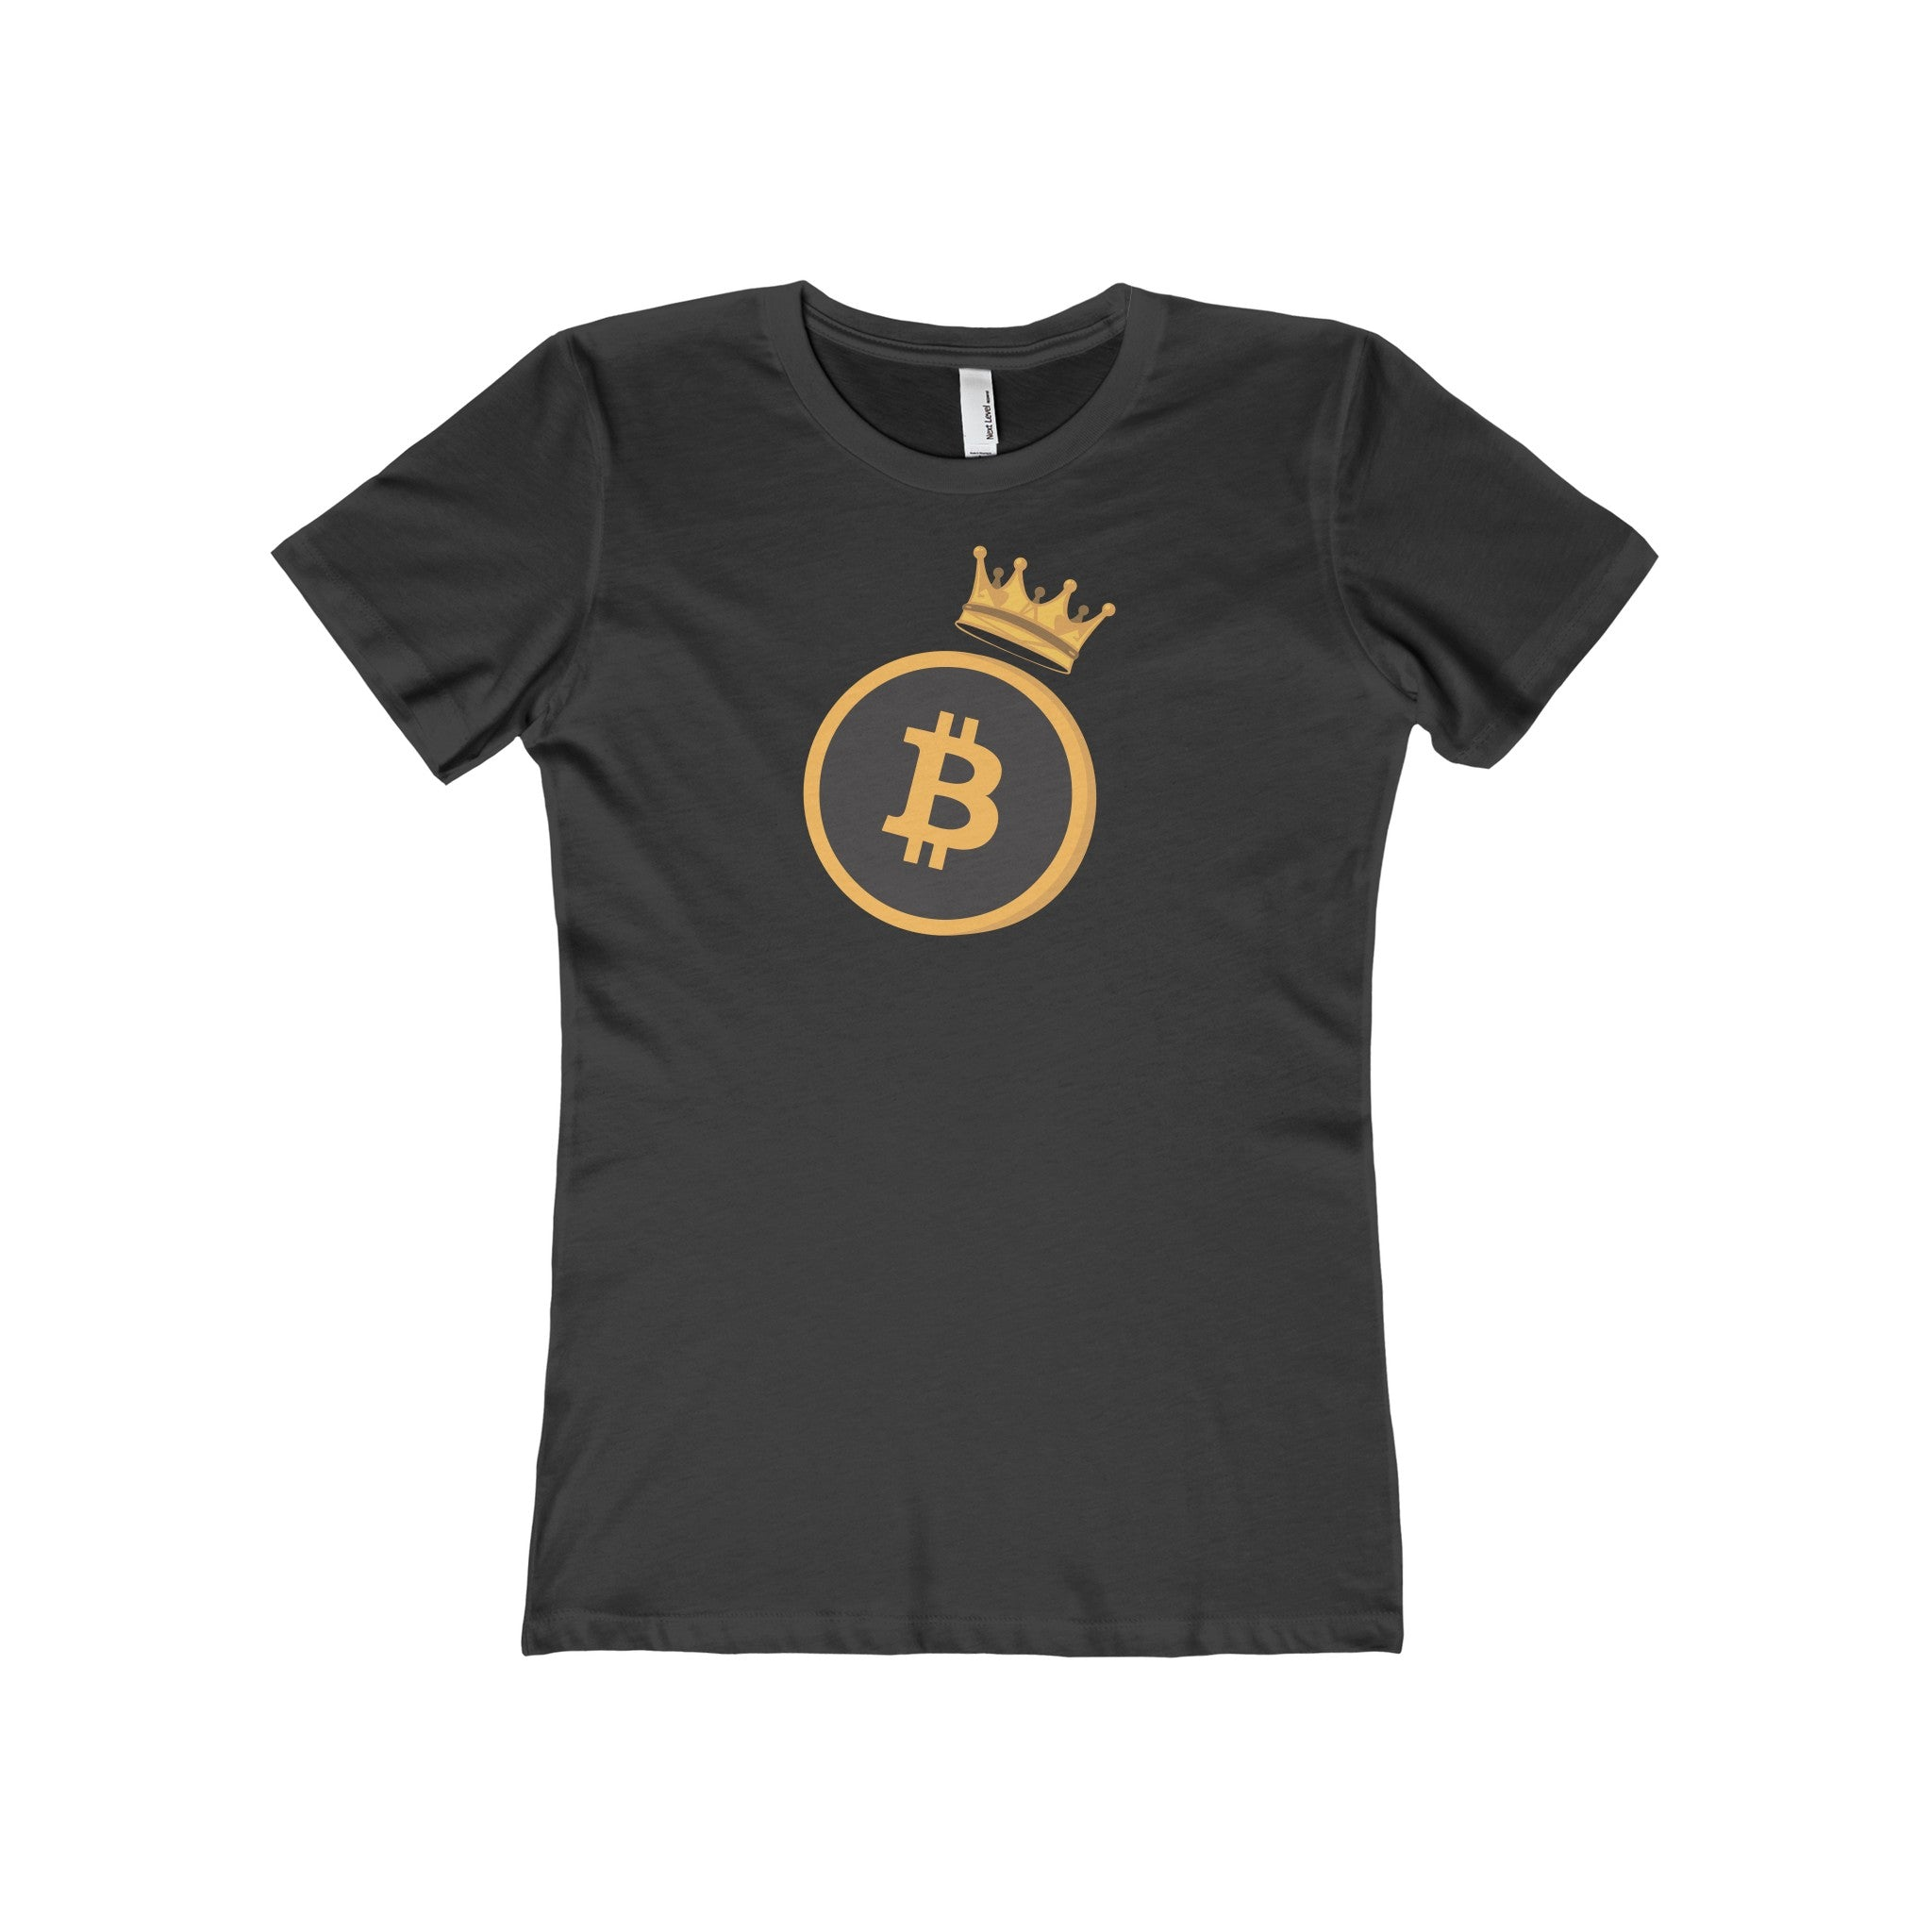 The 'Bitcoin Queen' Boyfriend Tee